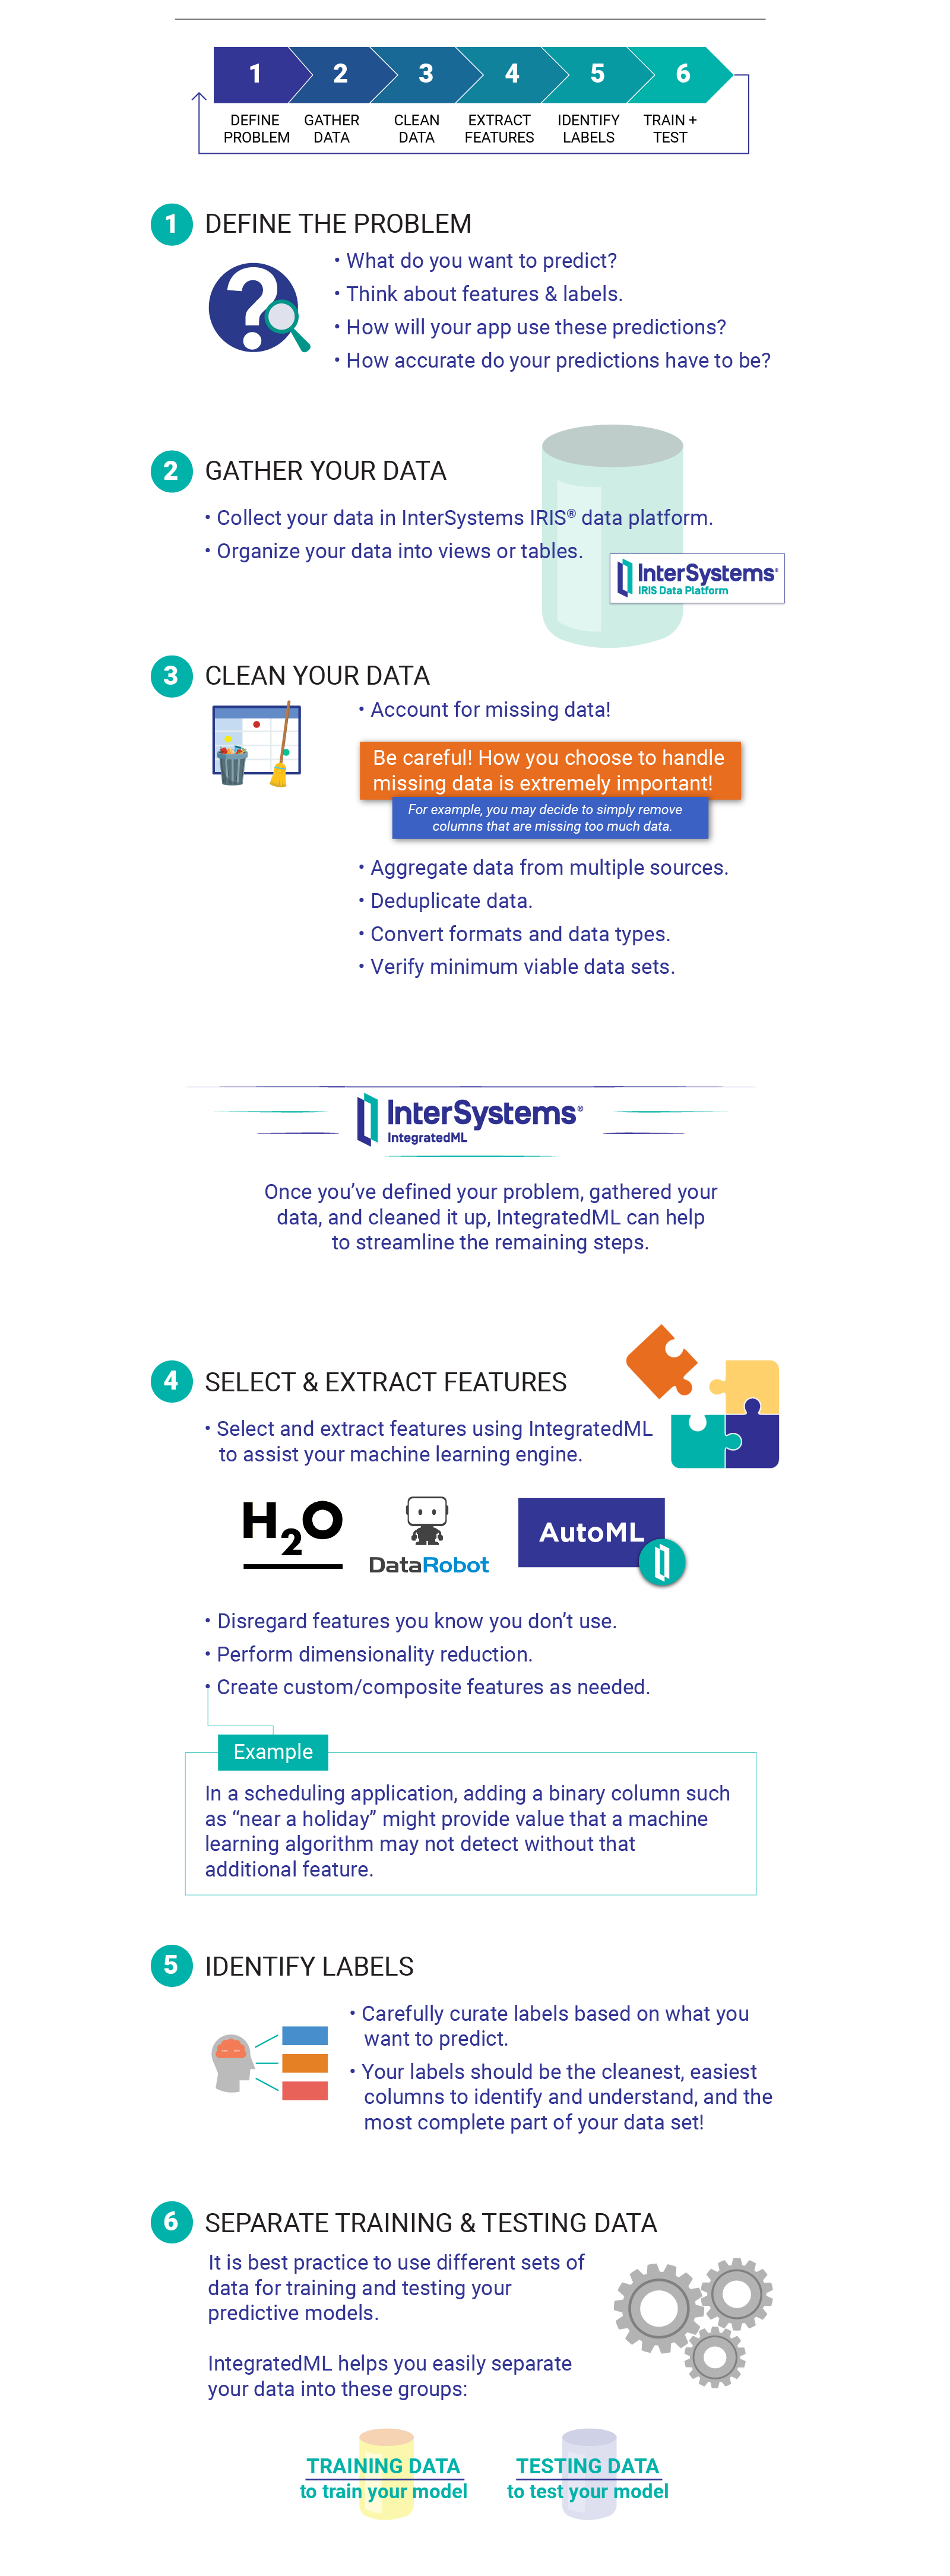 Infographic describing the six steps to prepare your data for machine learning.